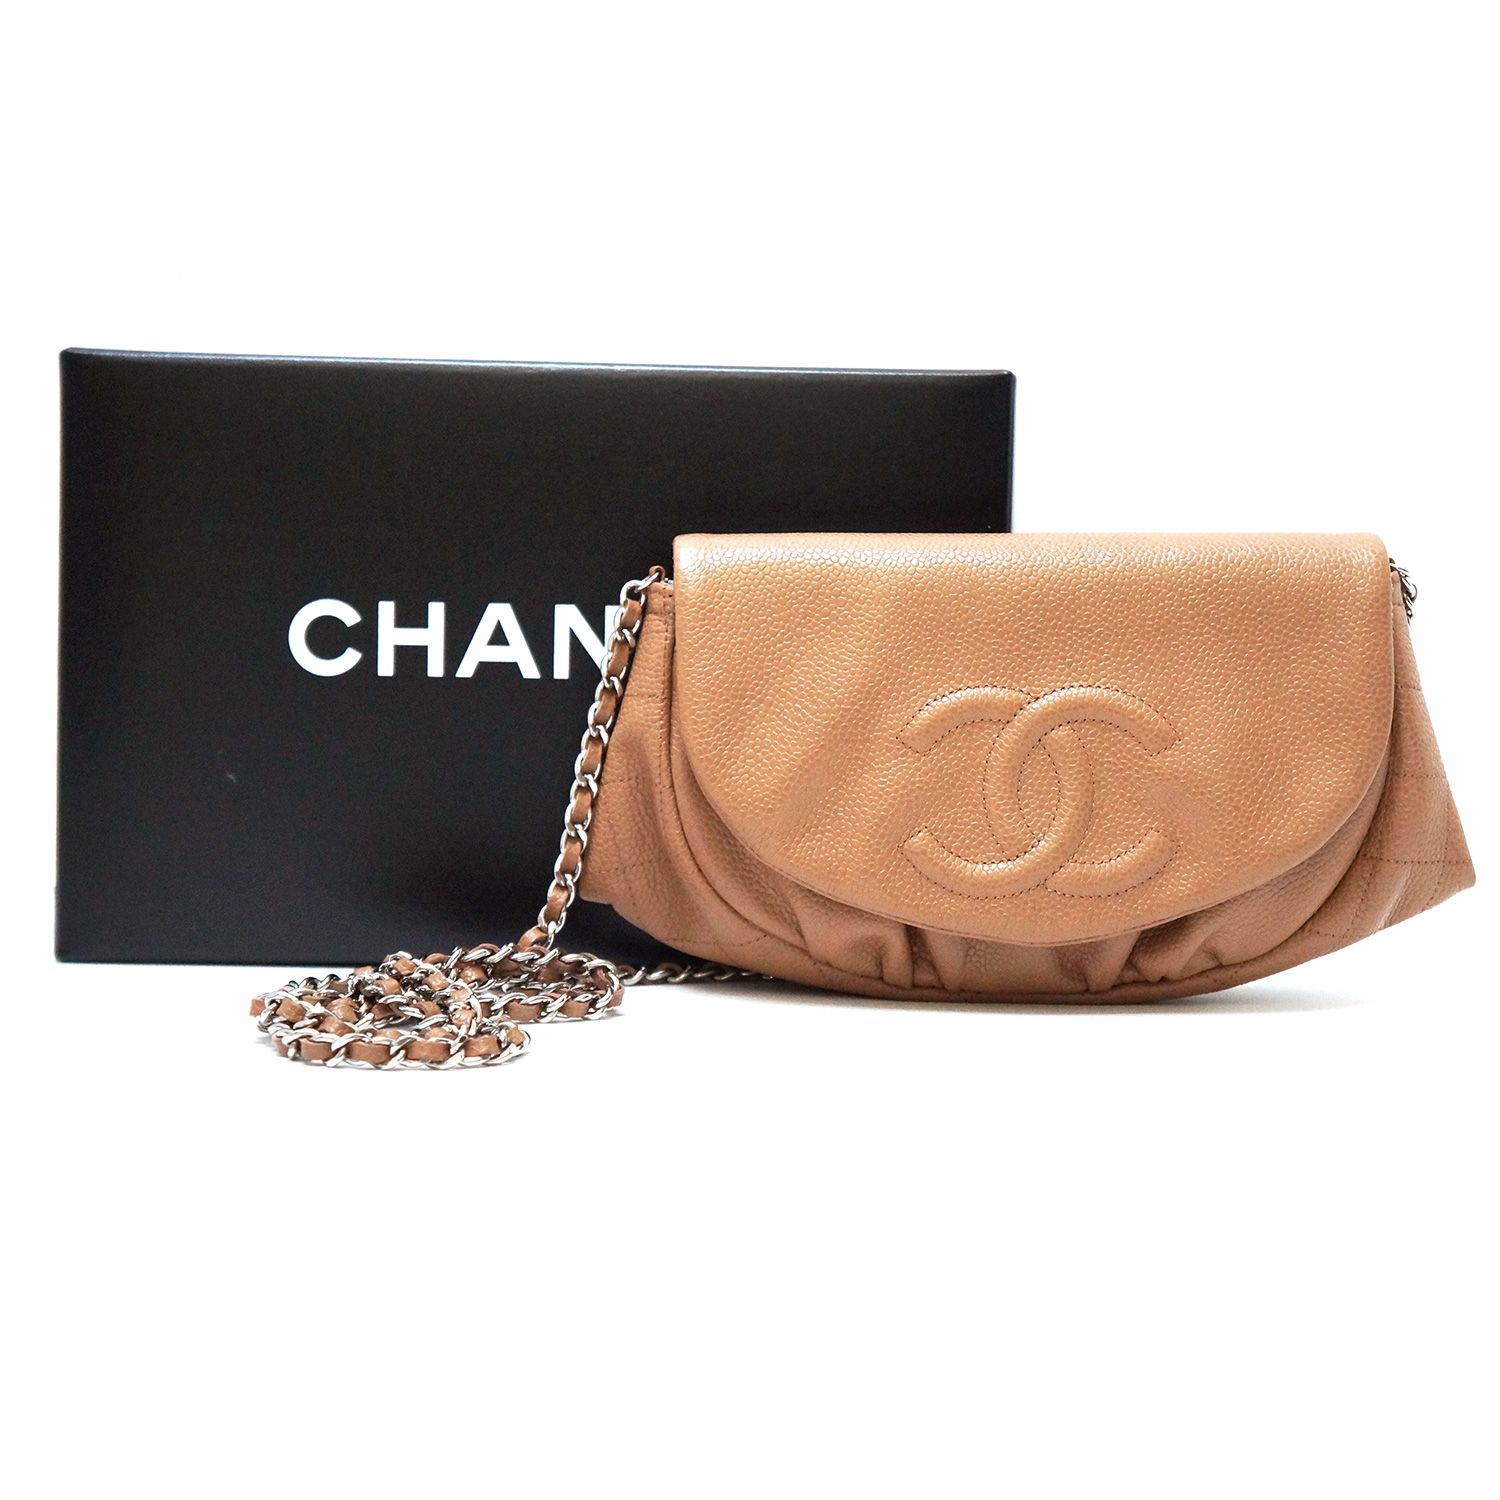 45ebfee24f3198 Chanel Half Moon Wallet-on-a-Chain WOC Taupe Caviar Leather ...